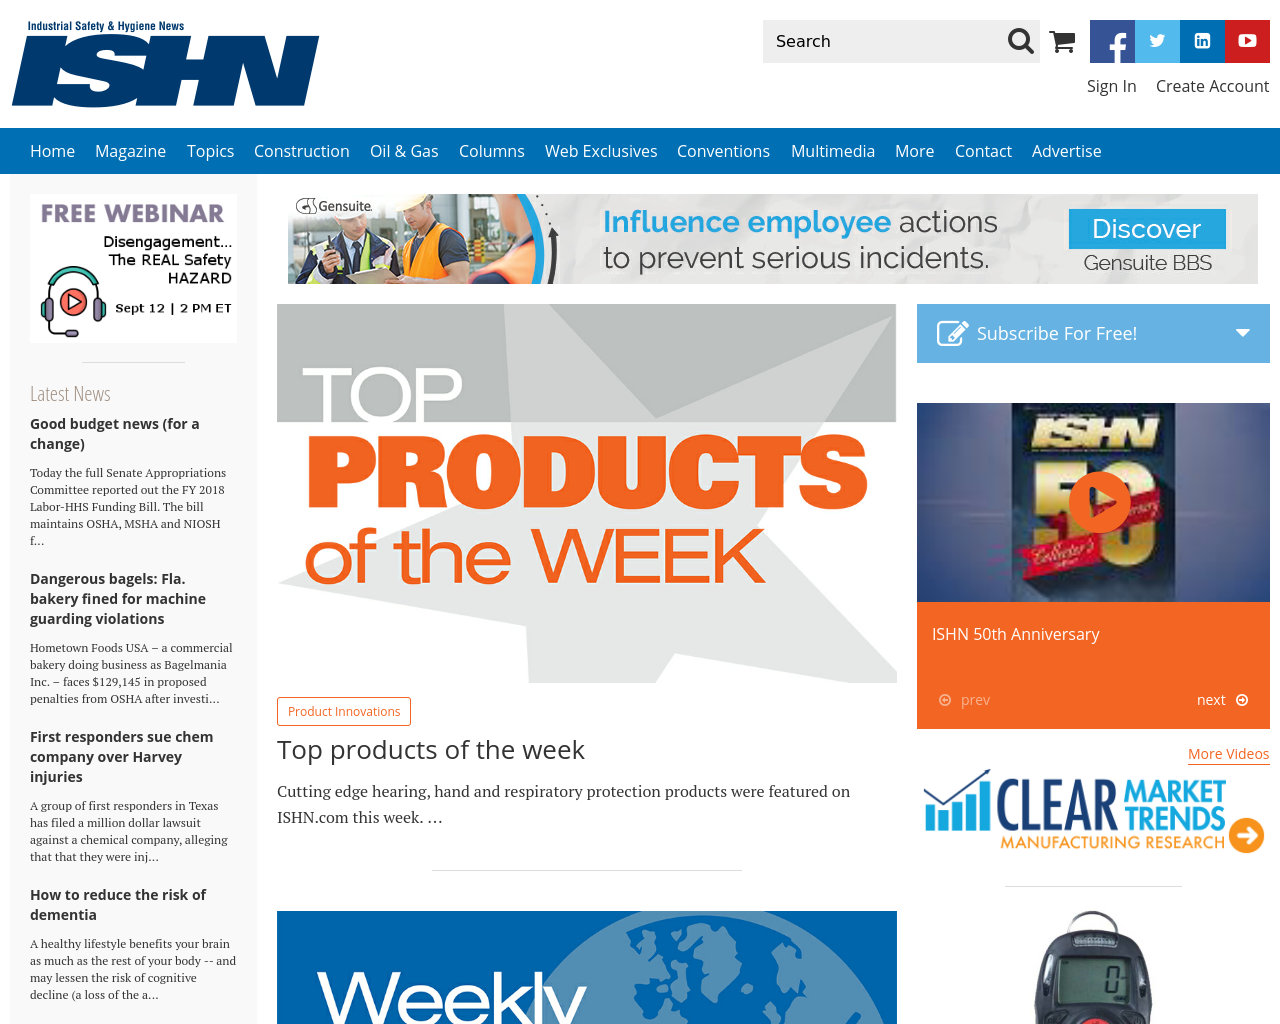 Industrial-Safety-&-Hygiene-News-(ISHN)-Advertising-Reviews-Pricing